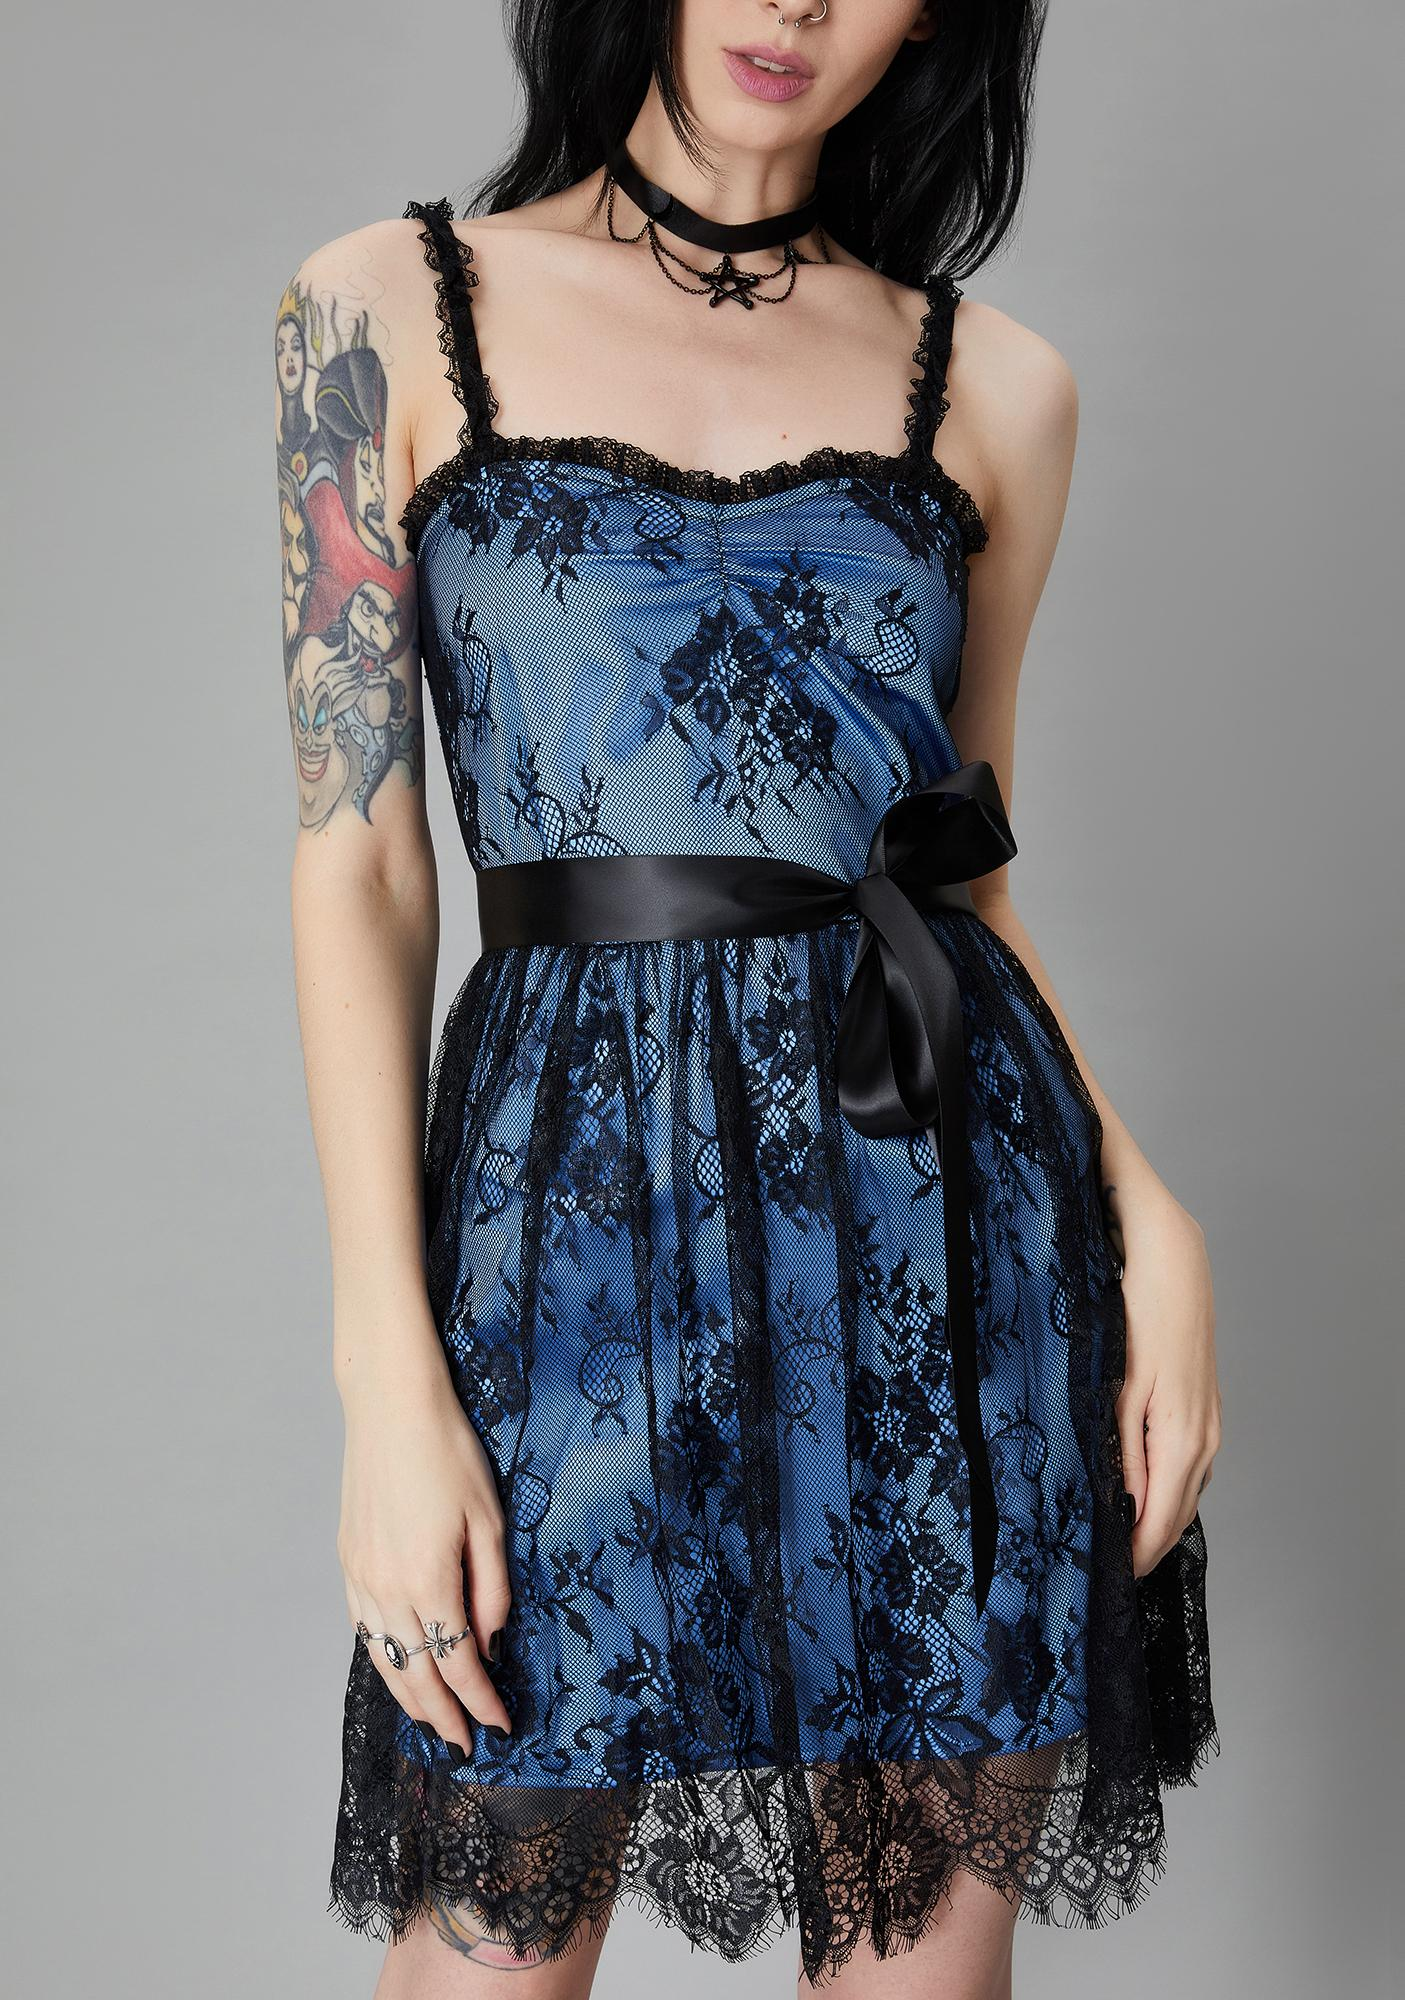 Widow Happily Ever Never Lace Dress